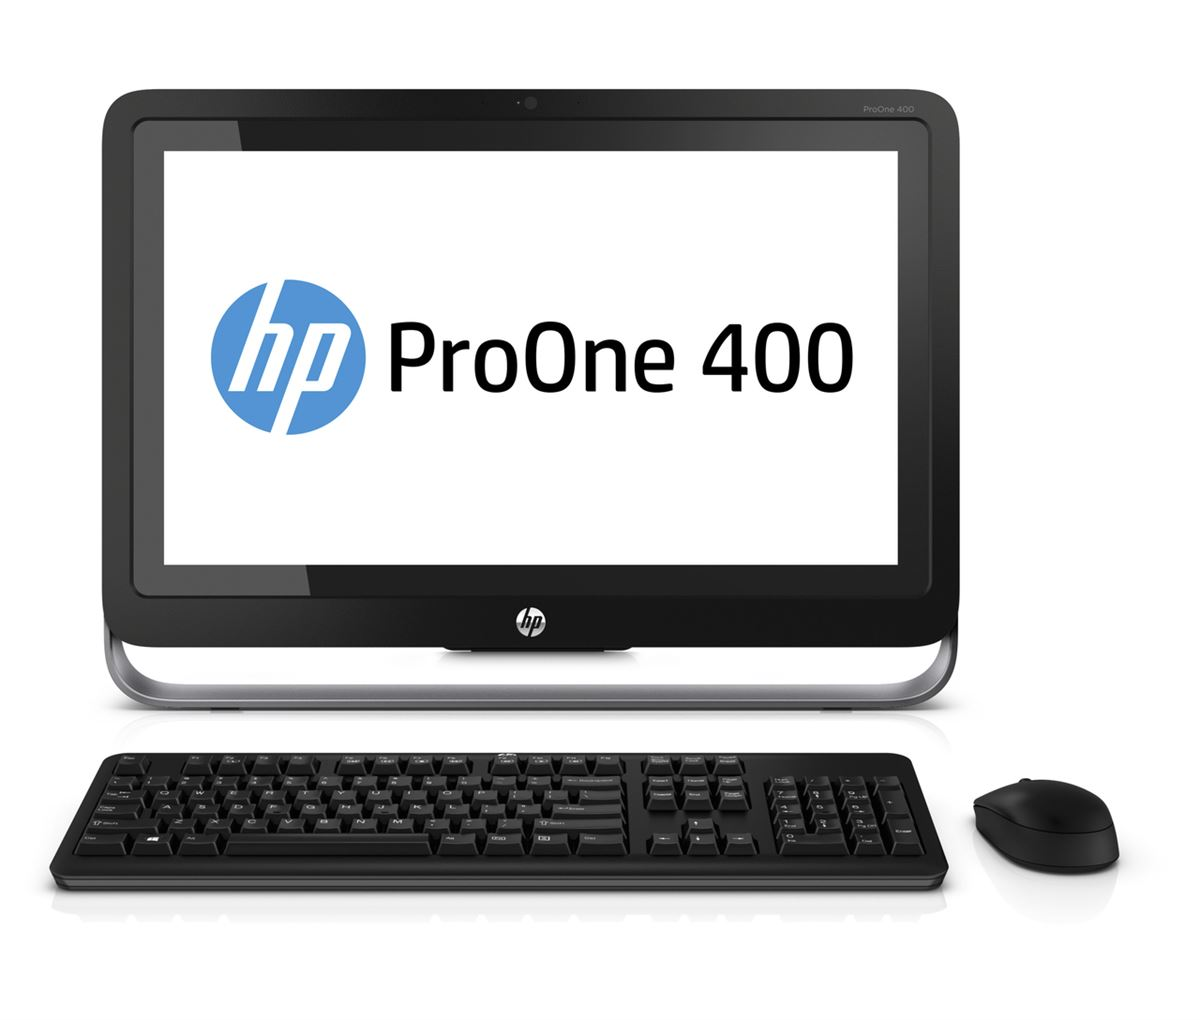 HP ProOne 400 Intel Core i5-4570T, All-In-One 21.5'' Touch, Intel HD4600 Graphics, 4GB RAM, 500GB HDD, DVDRW, Windows 7 Pro 64-Bit